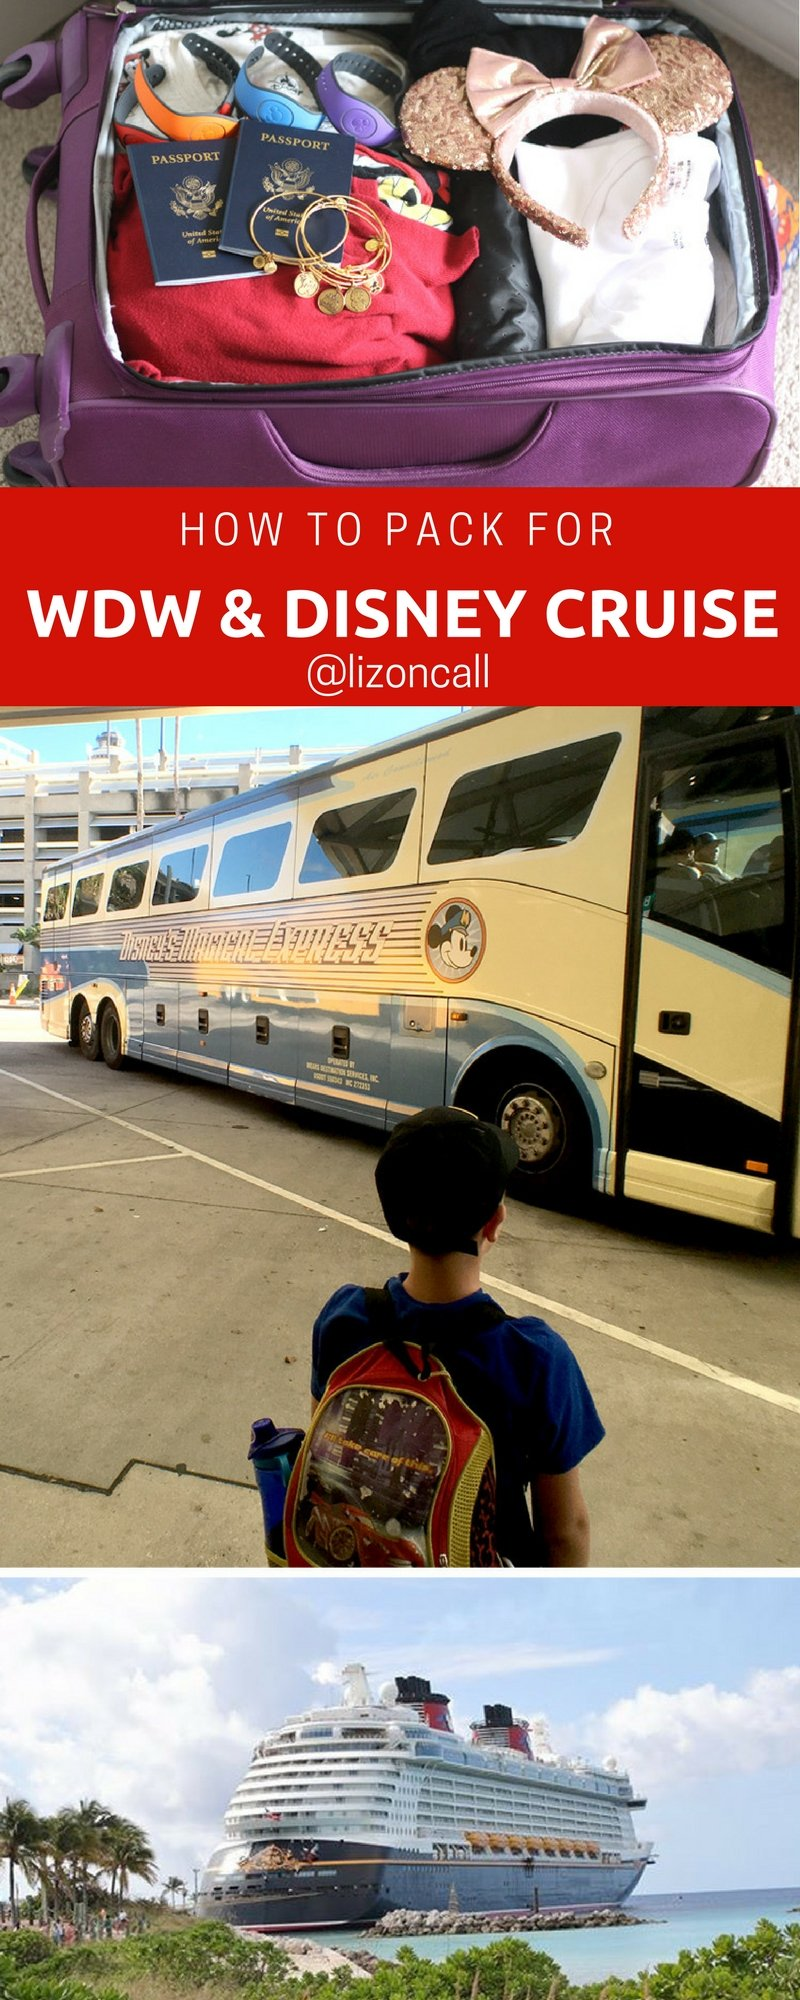 Packing for a family of 5 to spend a few days at Walt Disney World and aboard a Disney Cruise can be a little overwhelming. Here are my tips and printable packing list on how to pack for Walt Disney World and a Disney Cruise. #packinglist #waltdisneyworld #disneycruise